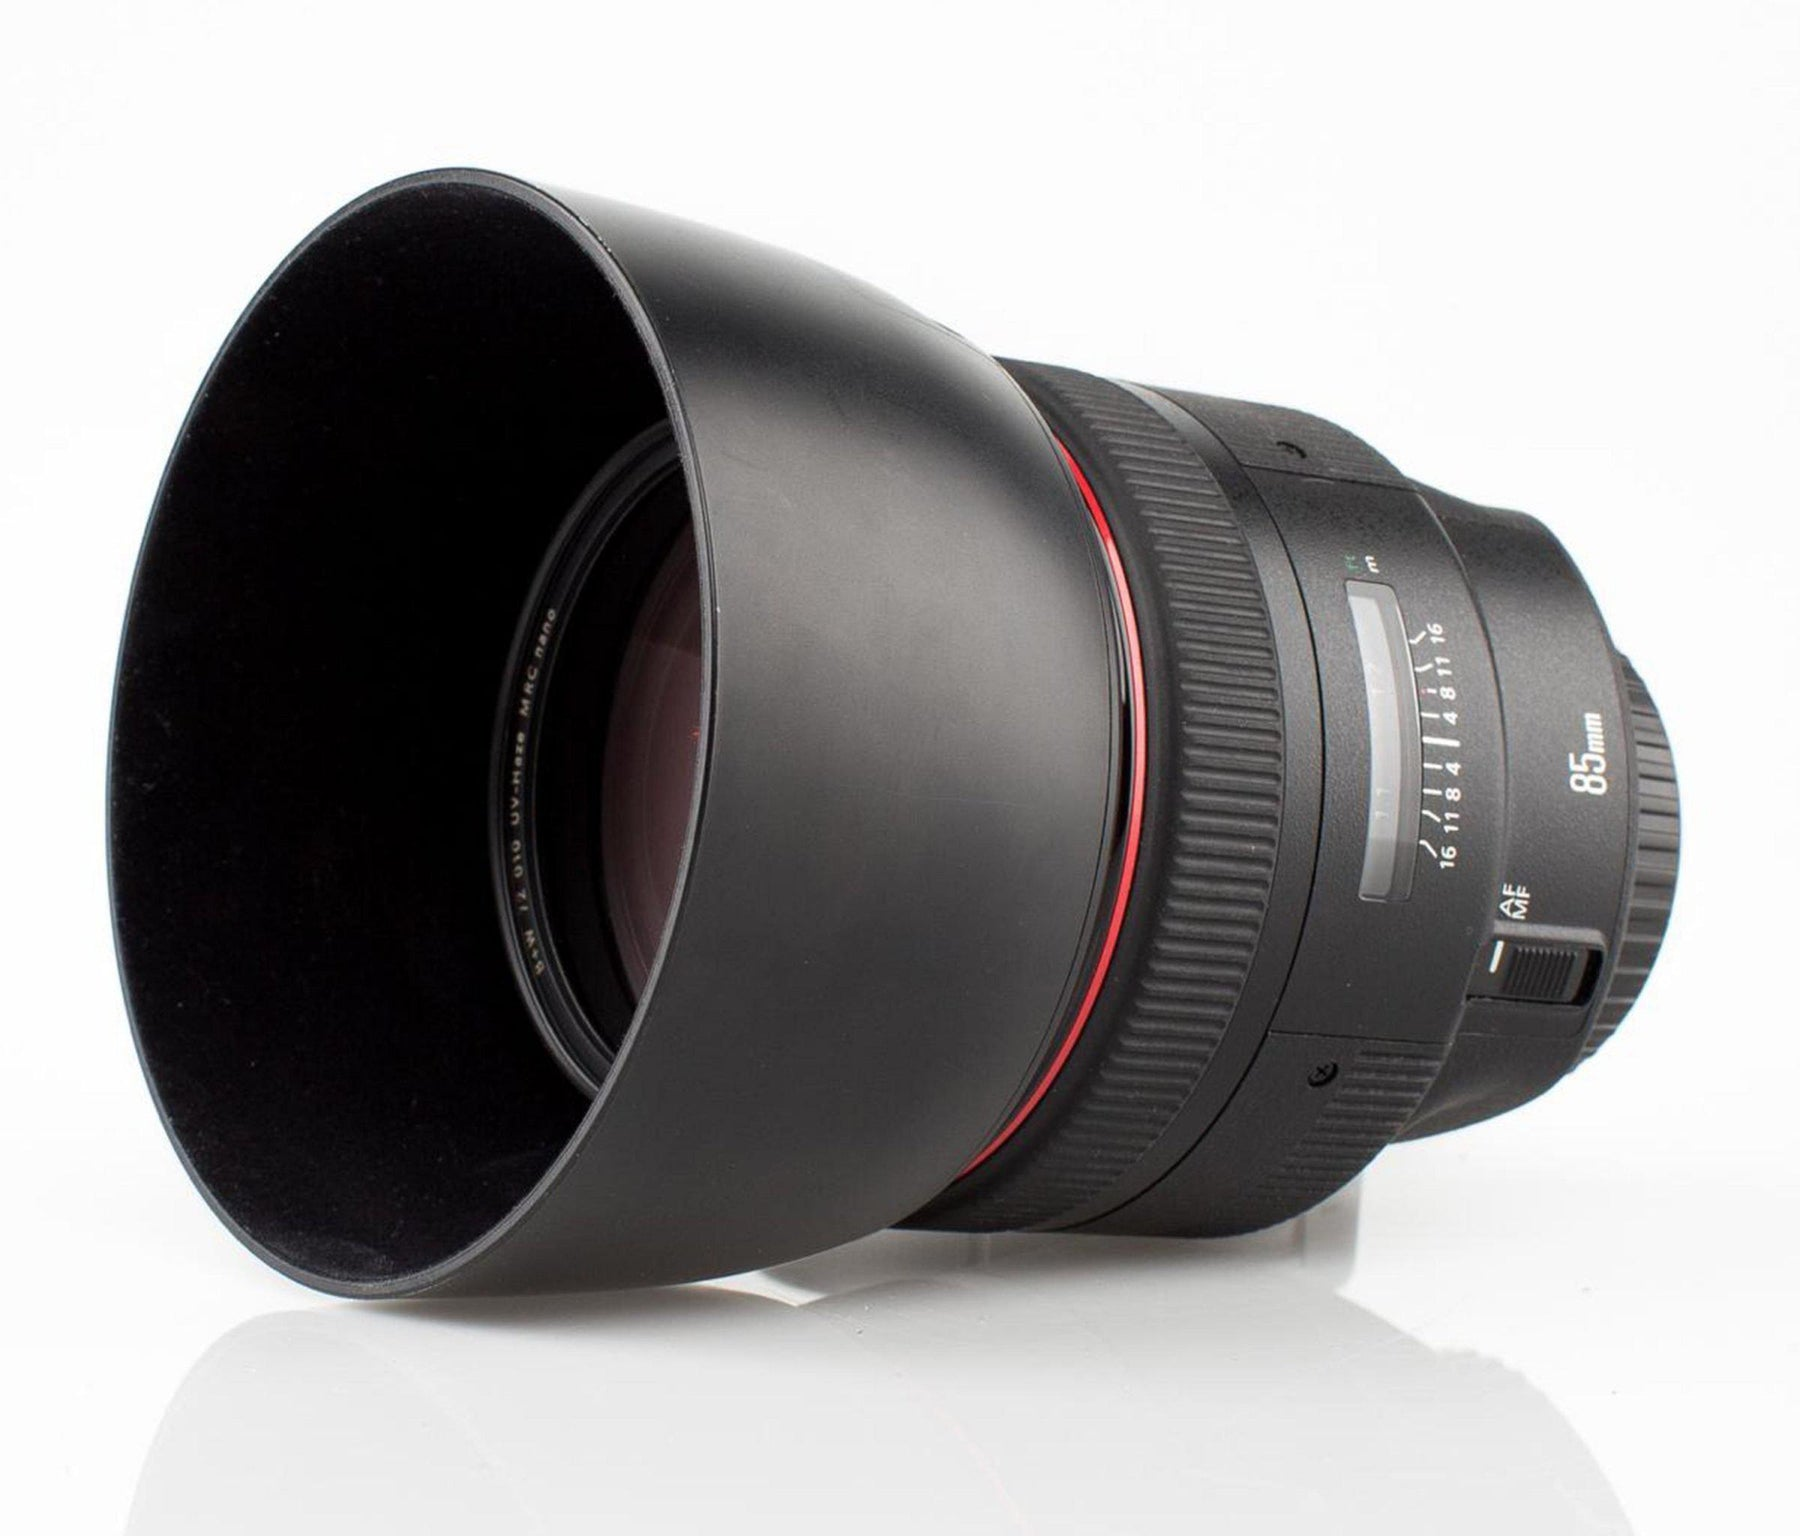 Canon EF 85mm f/1.2L II USM Lens - Available with the LensLockers Equipment Access Program (LEAP)